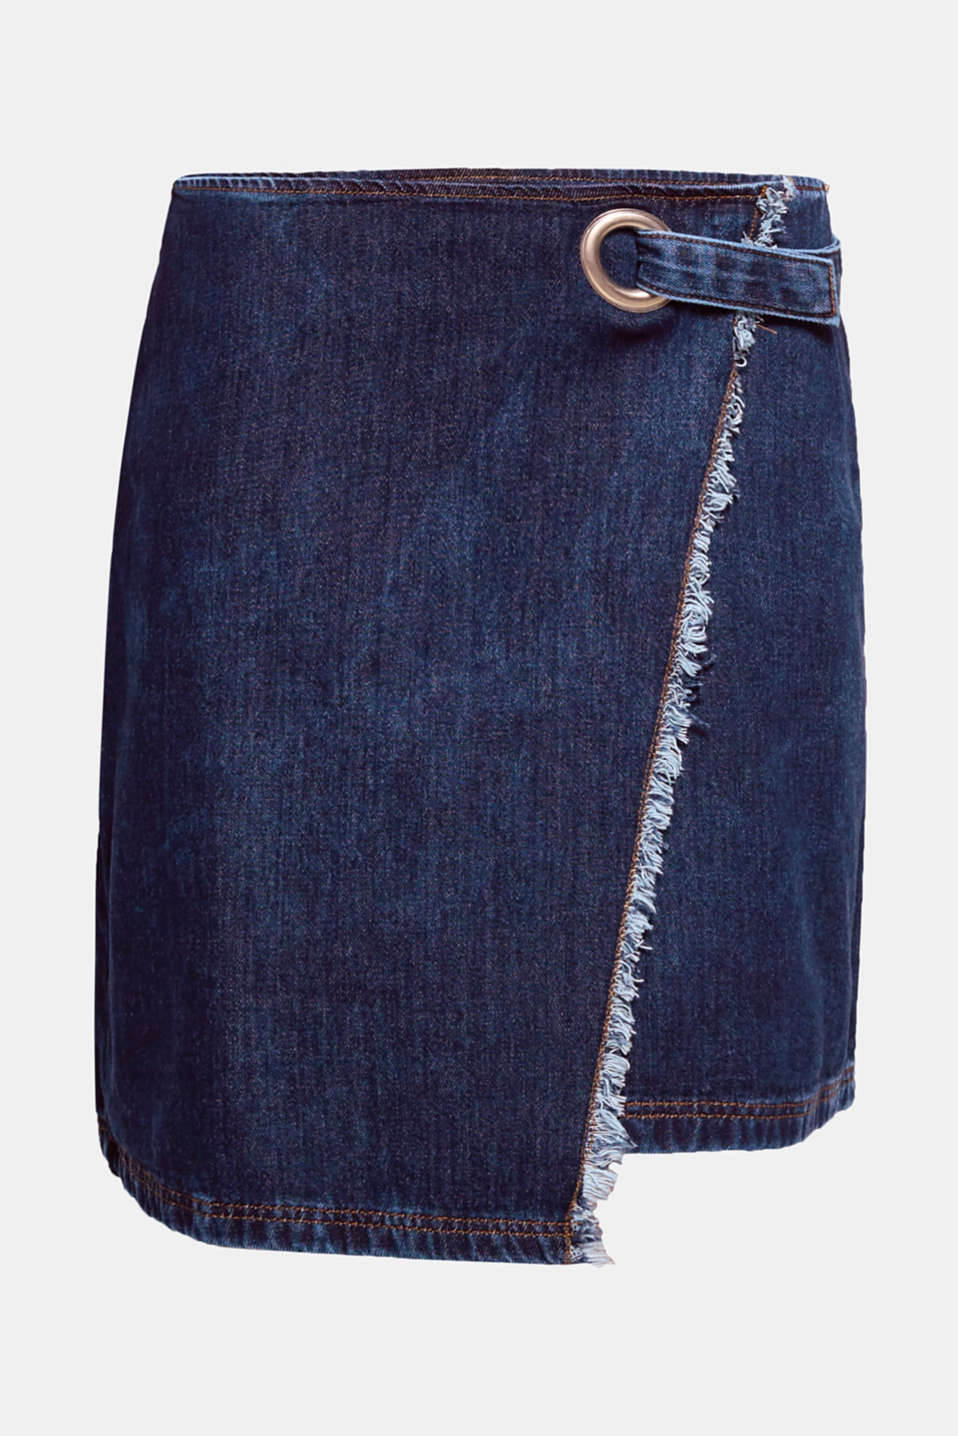 This denim skirt with an asymmetric, wrap-over effect front and casual frayed edges is both cool and trendy.